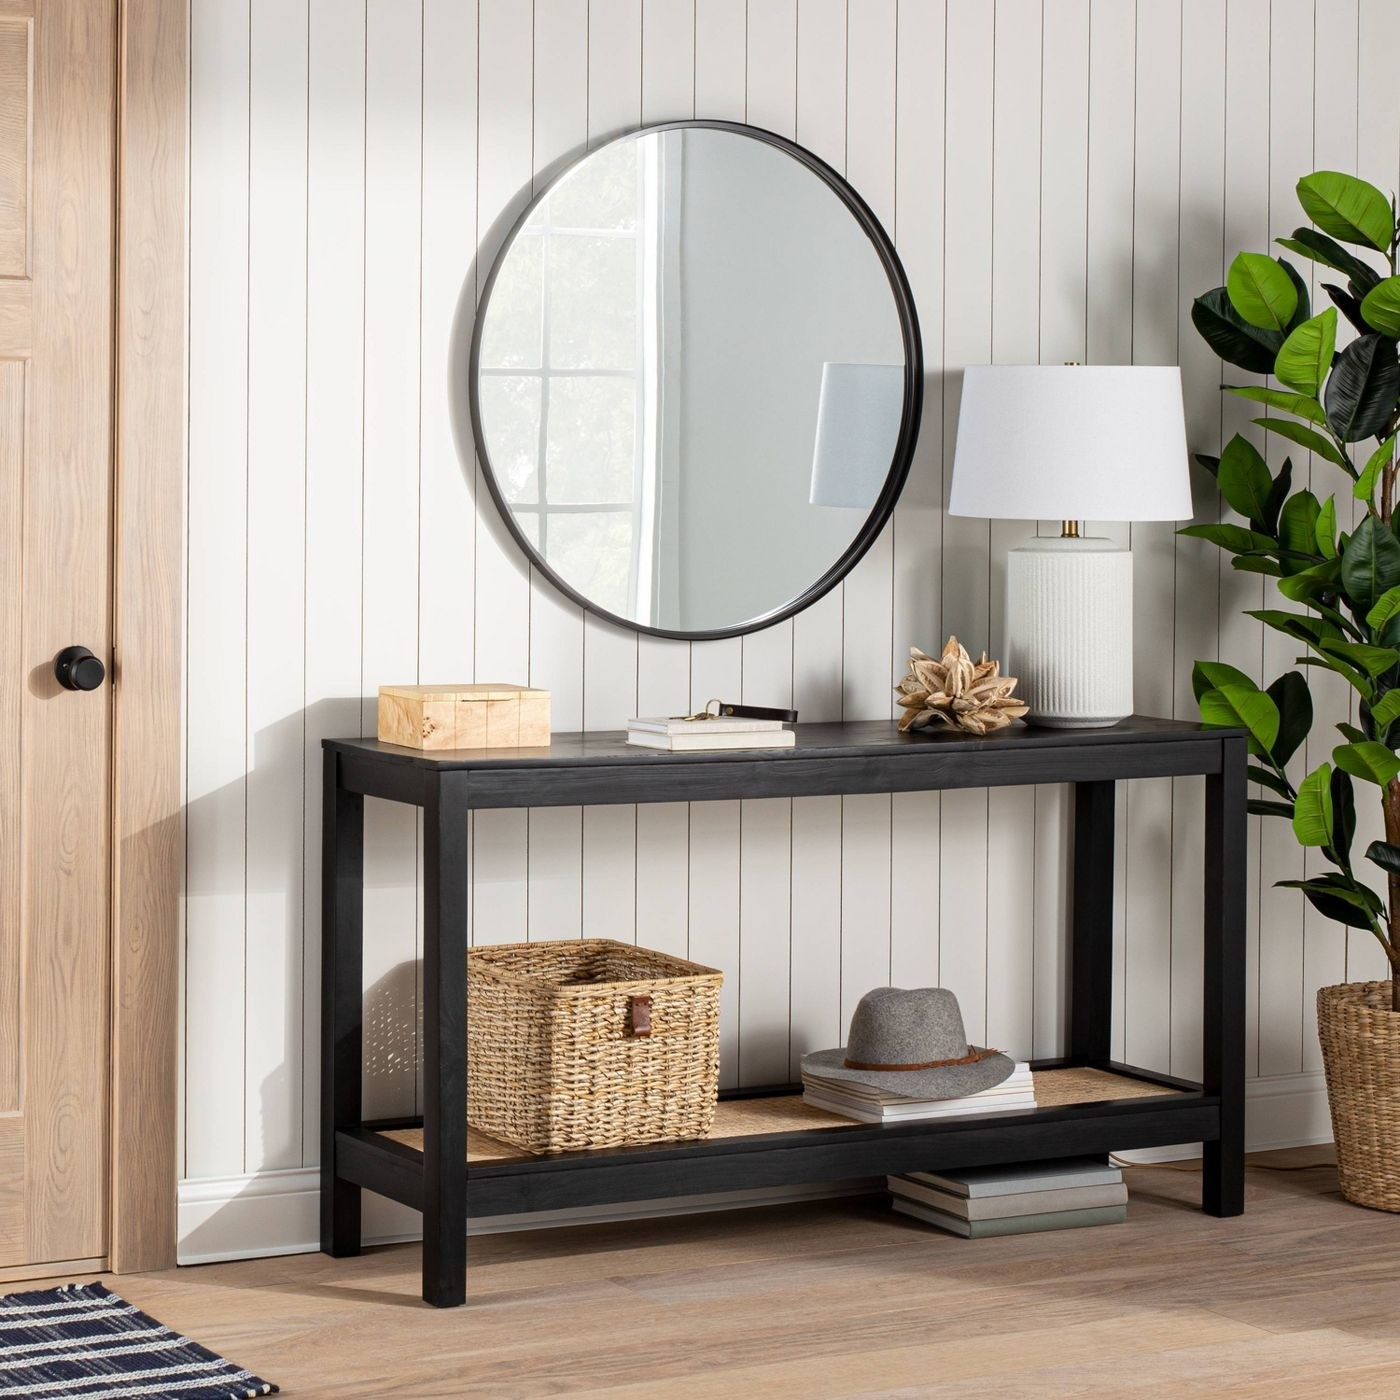 A round mirror above a console table in an entryway